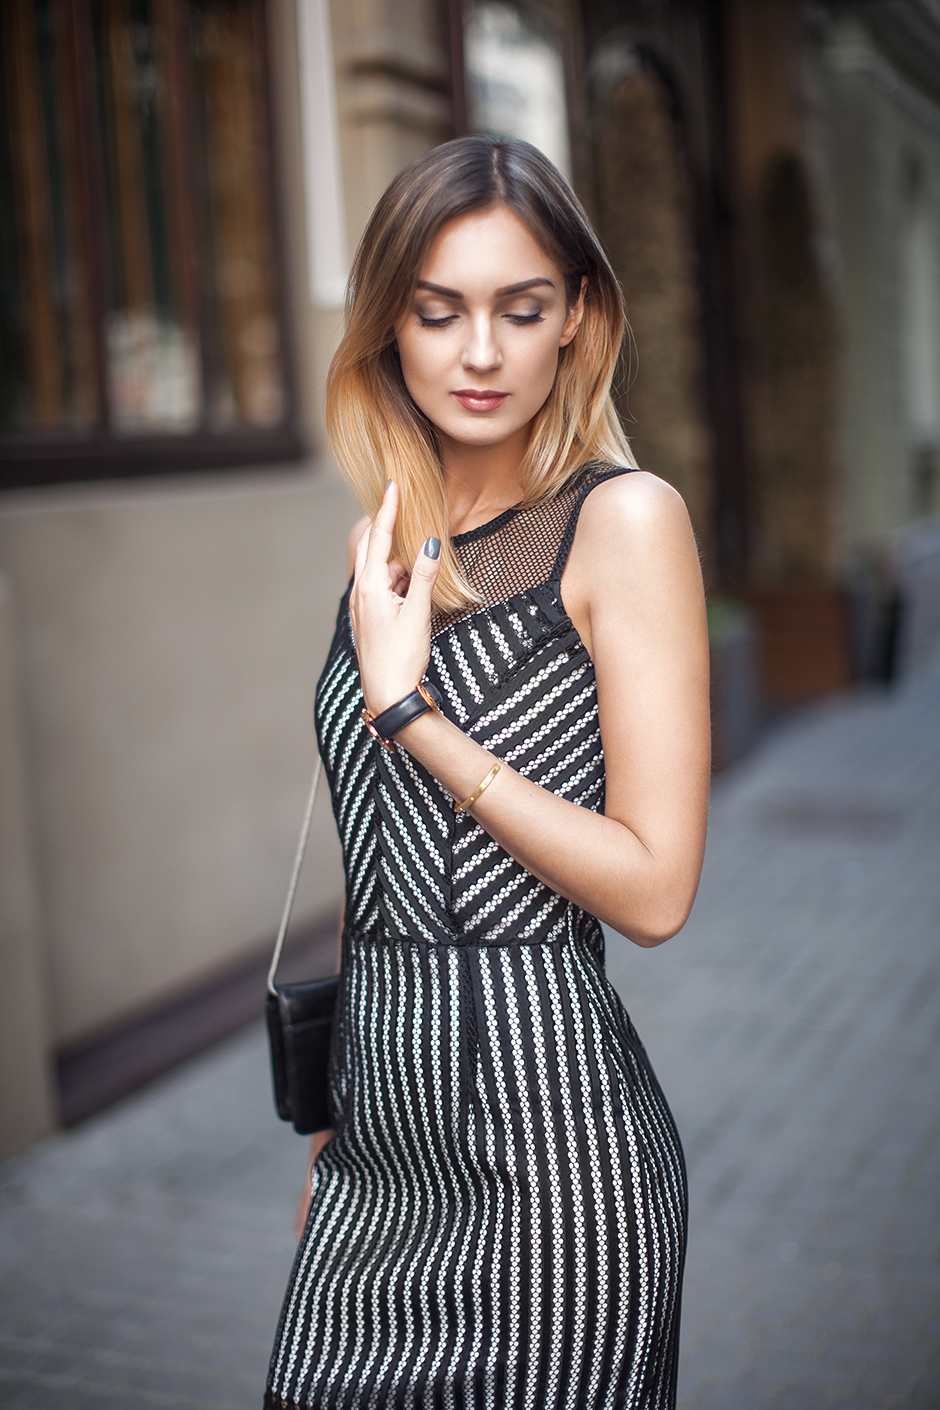 fashion-blogger-street-style-bodycon-dress-outfit